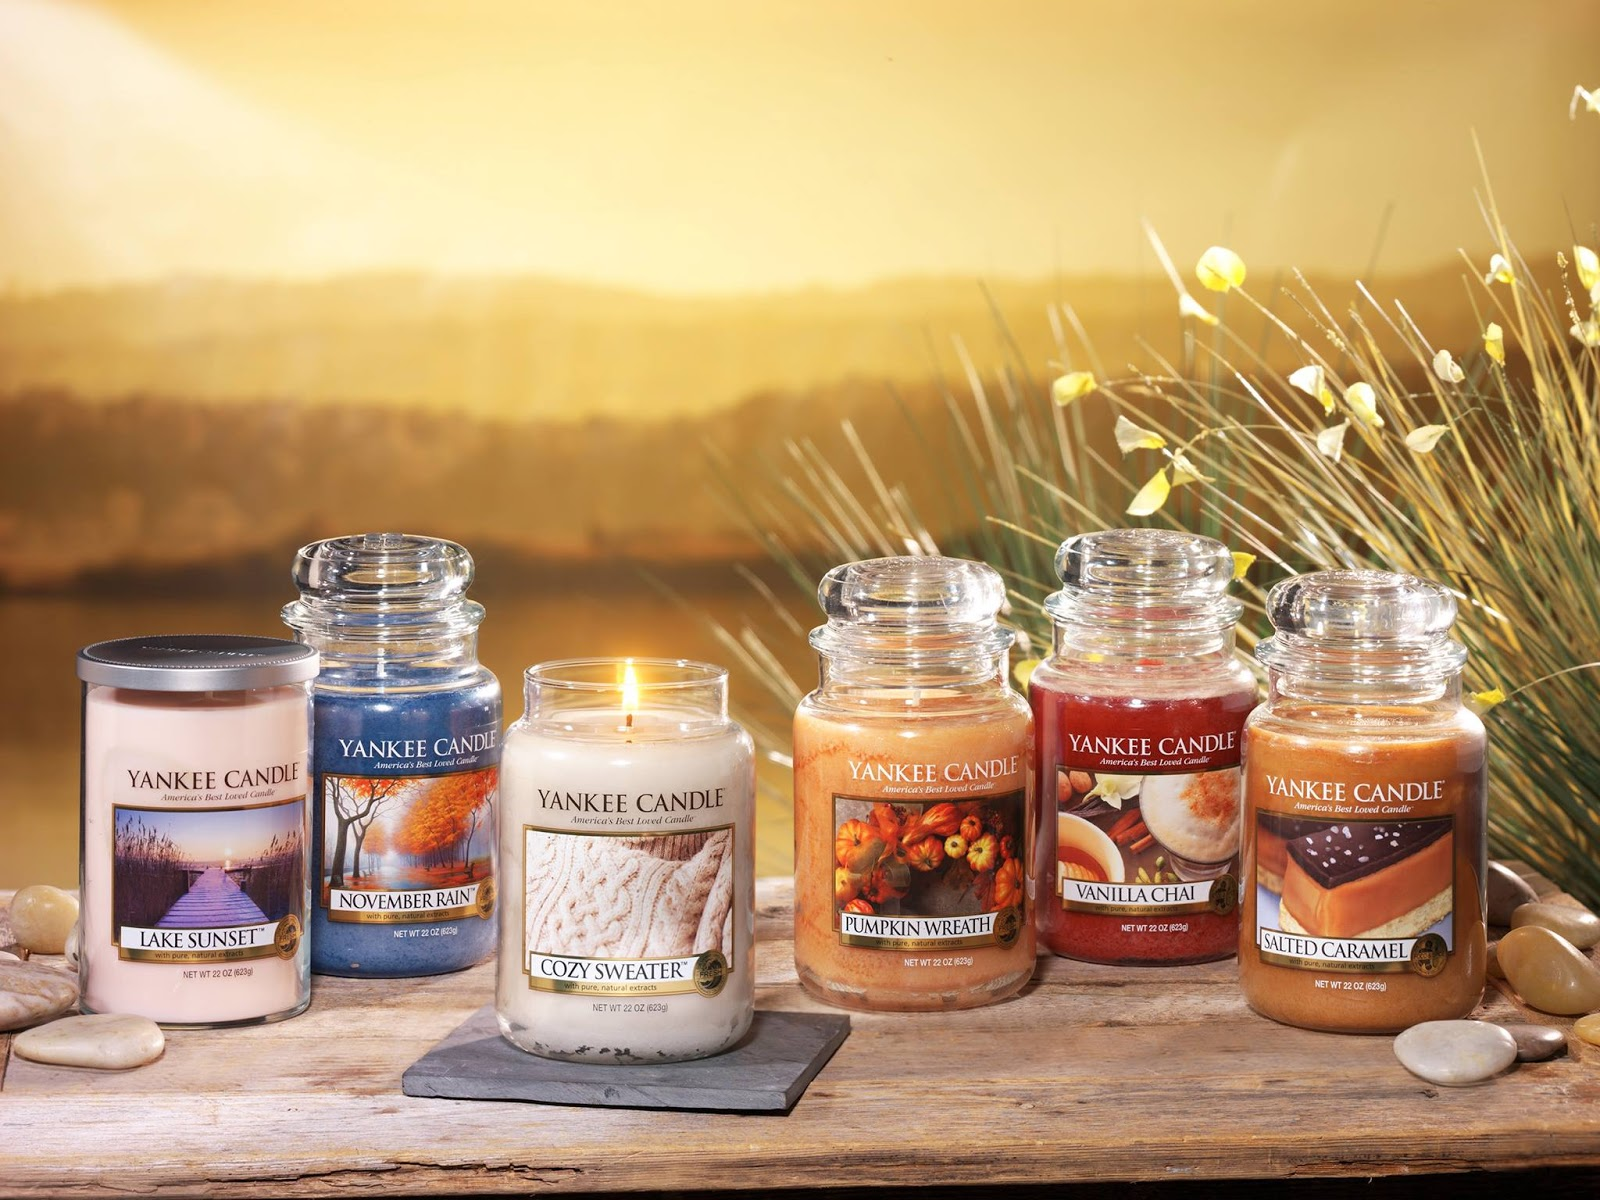 Yankee candle buy 2 get 2 free coupon for What are the best scented candles to buy